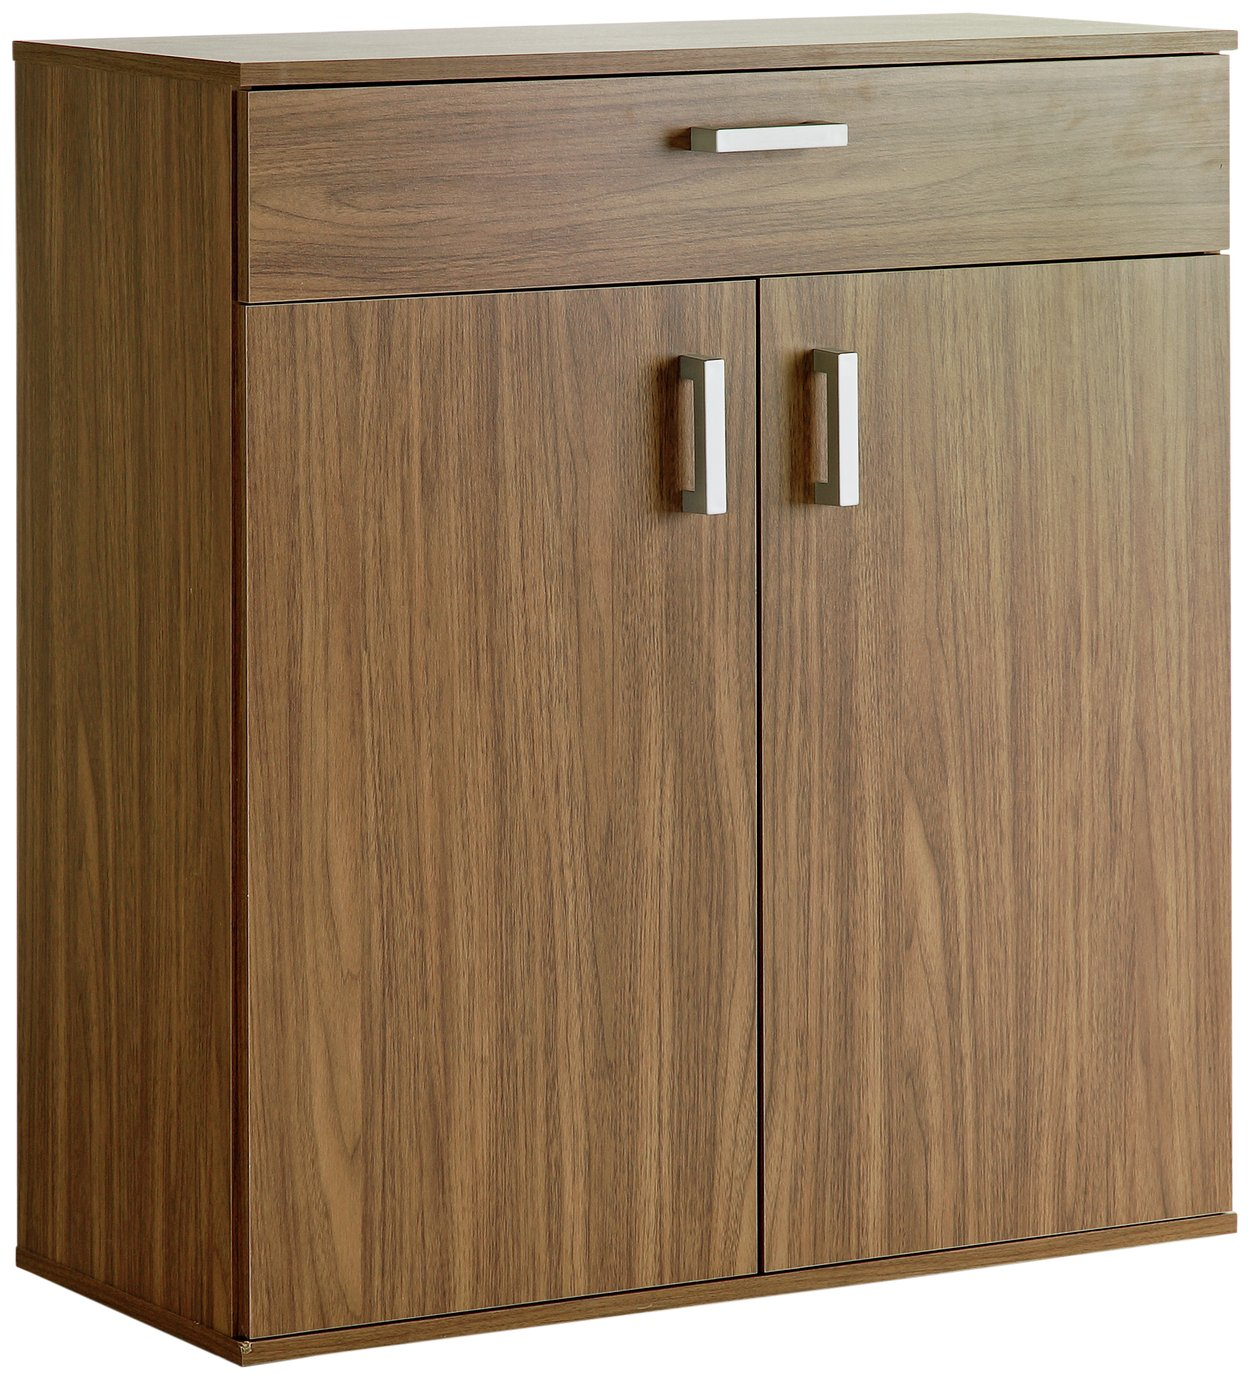 Argos Home Venetia Shoe Storage Cabinet - Walnut Effect